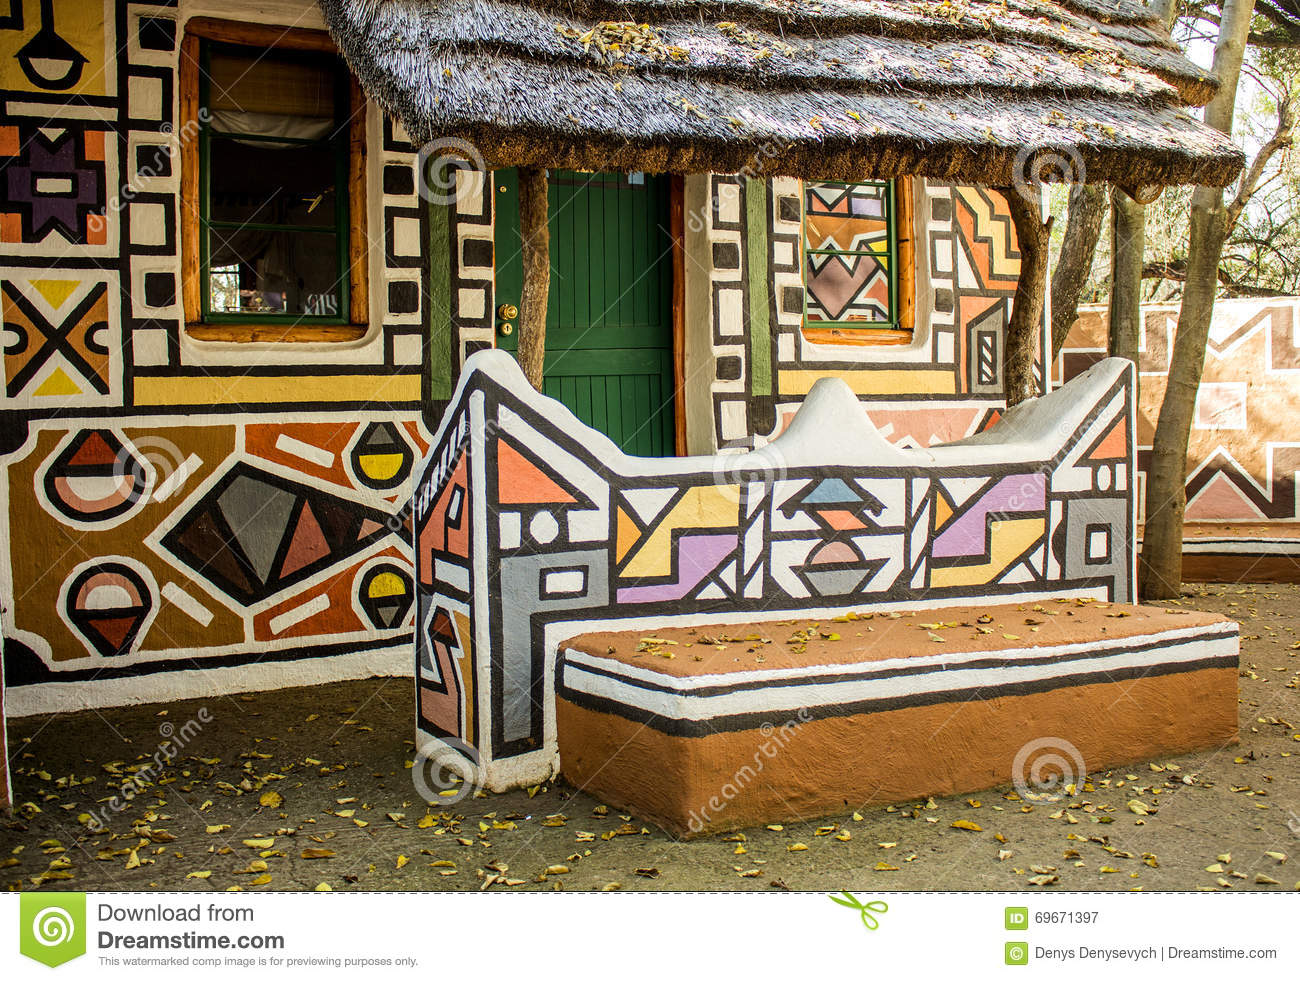 rondavel africain maison dans le style tribal ethnique de peinture image stock image du. Black Bedroom Furniture Sets. Home Design Ideas